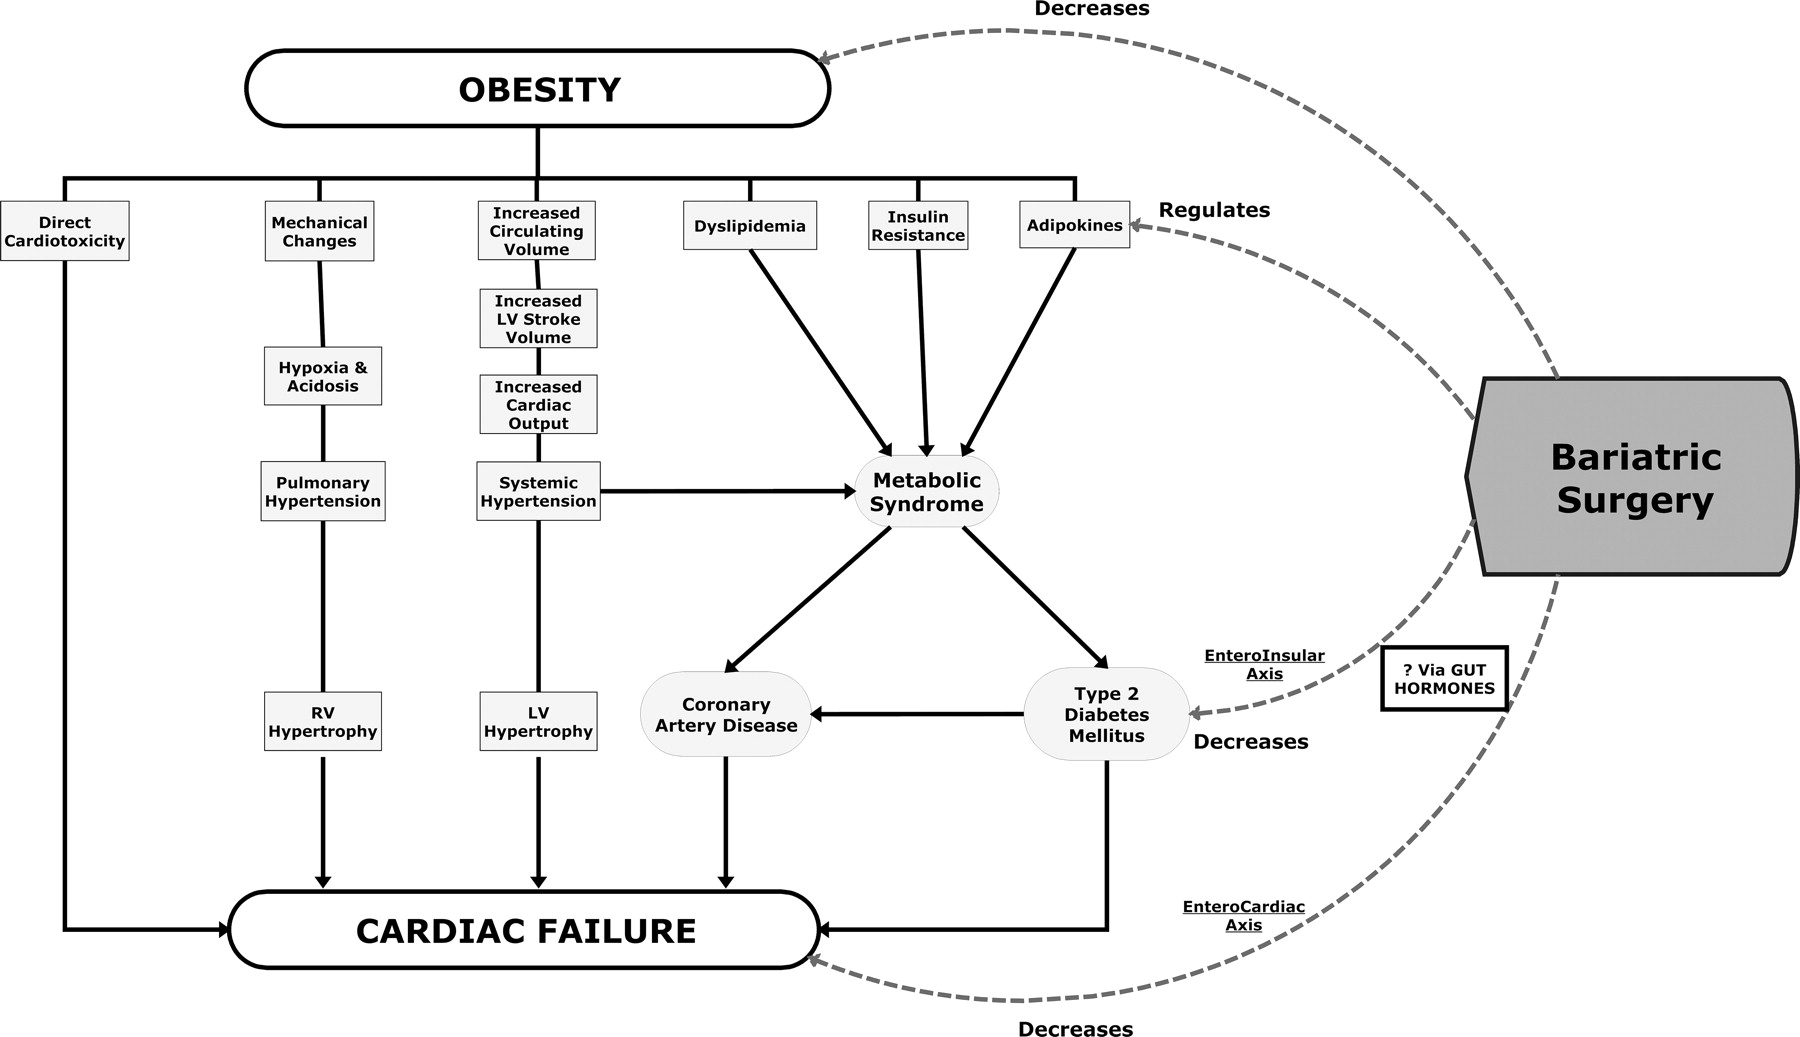 Effects Of Bariatric Surgery On Cardiovascular Function